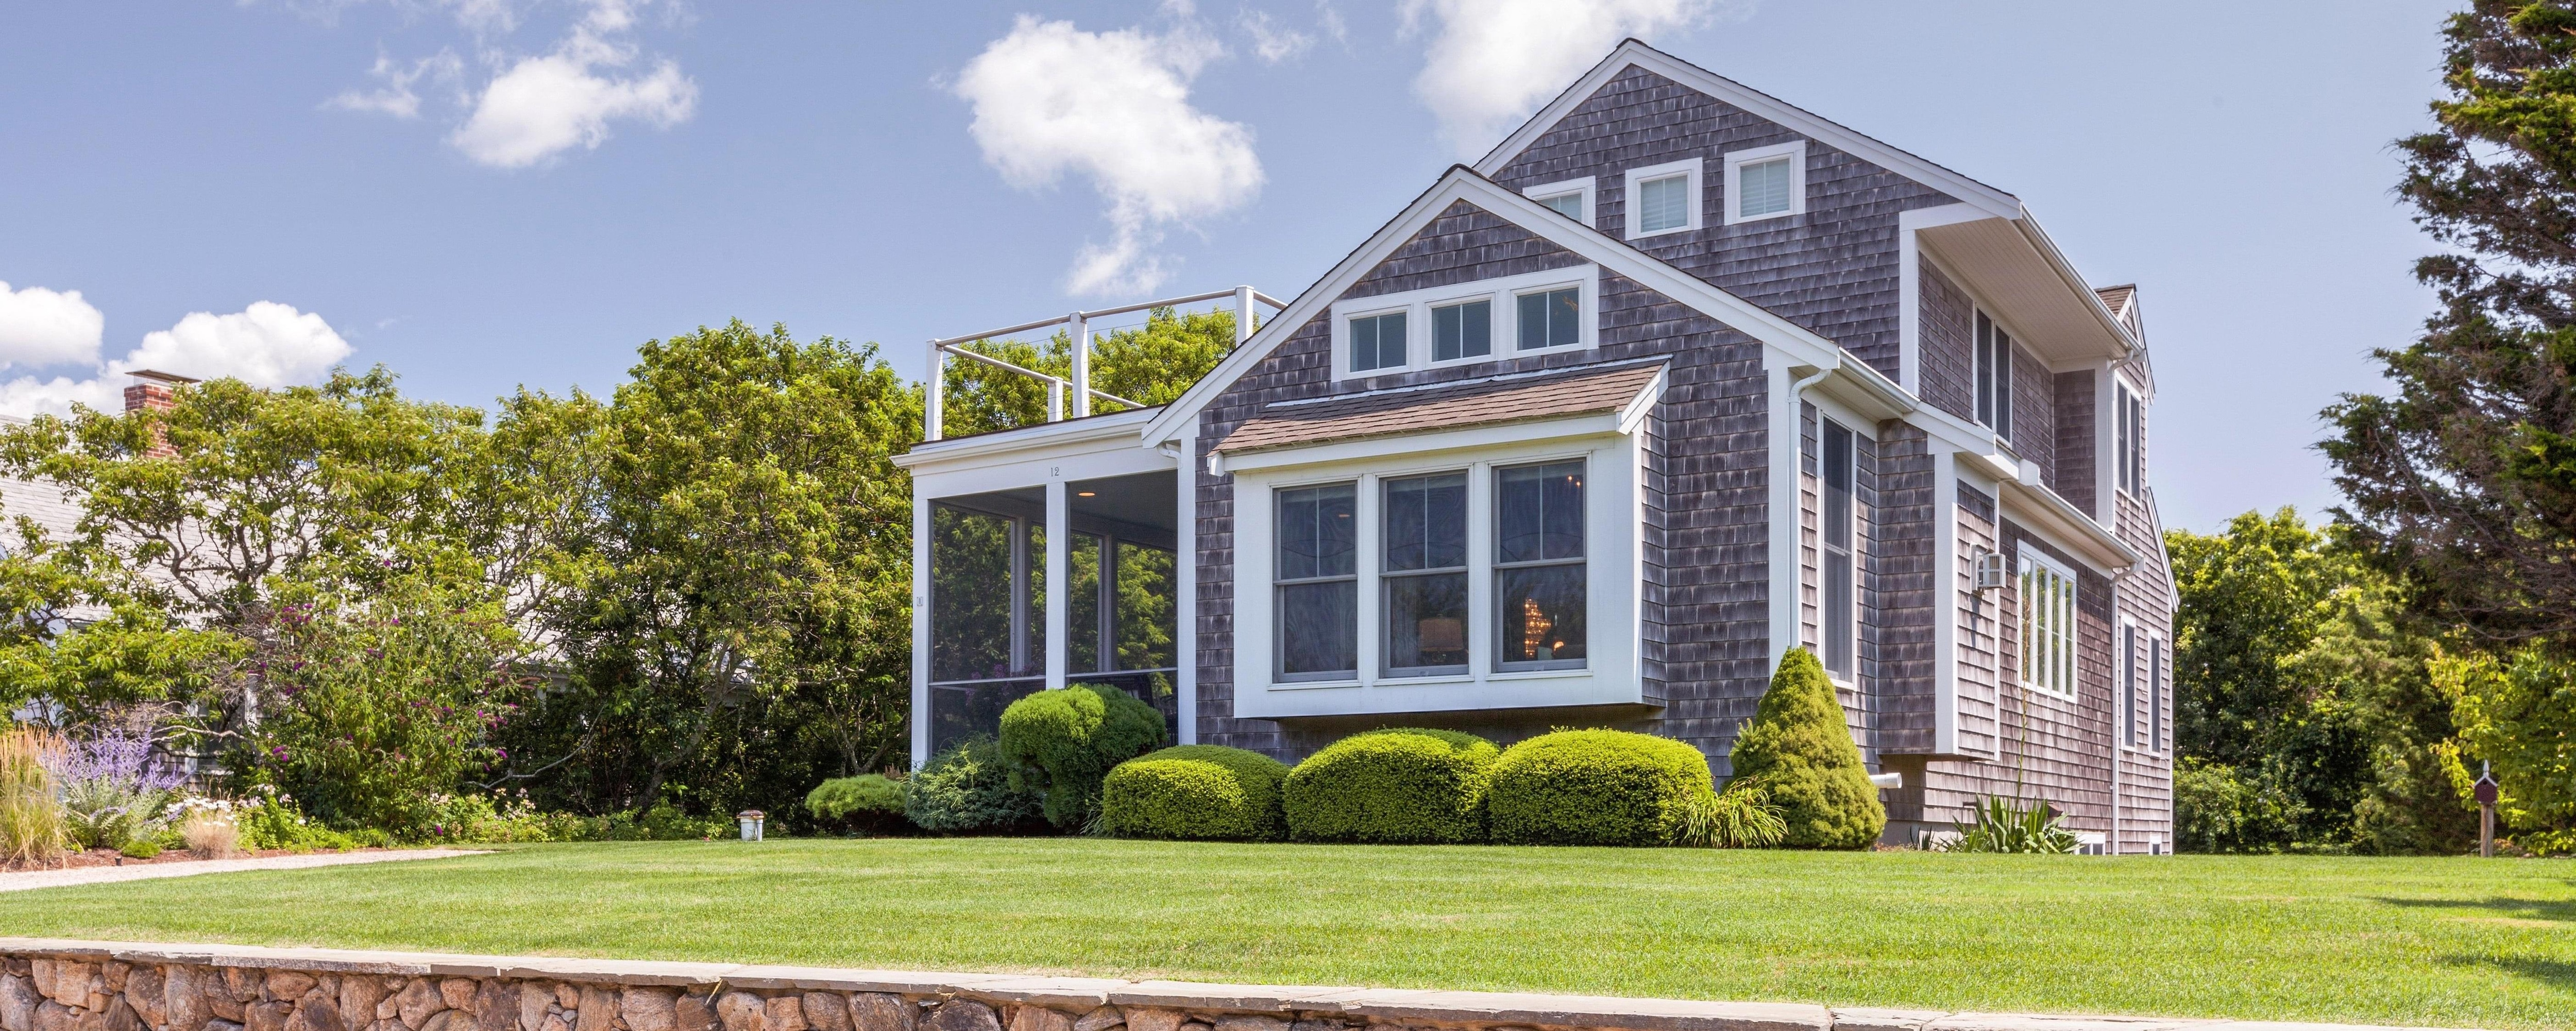 Charming, spacious gray cottage in Cape Cod with natural stone wall.